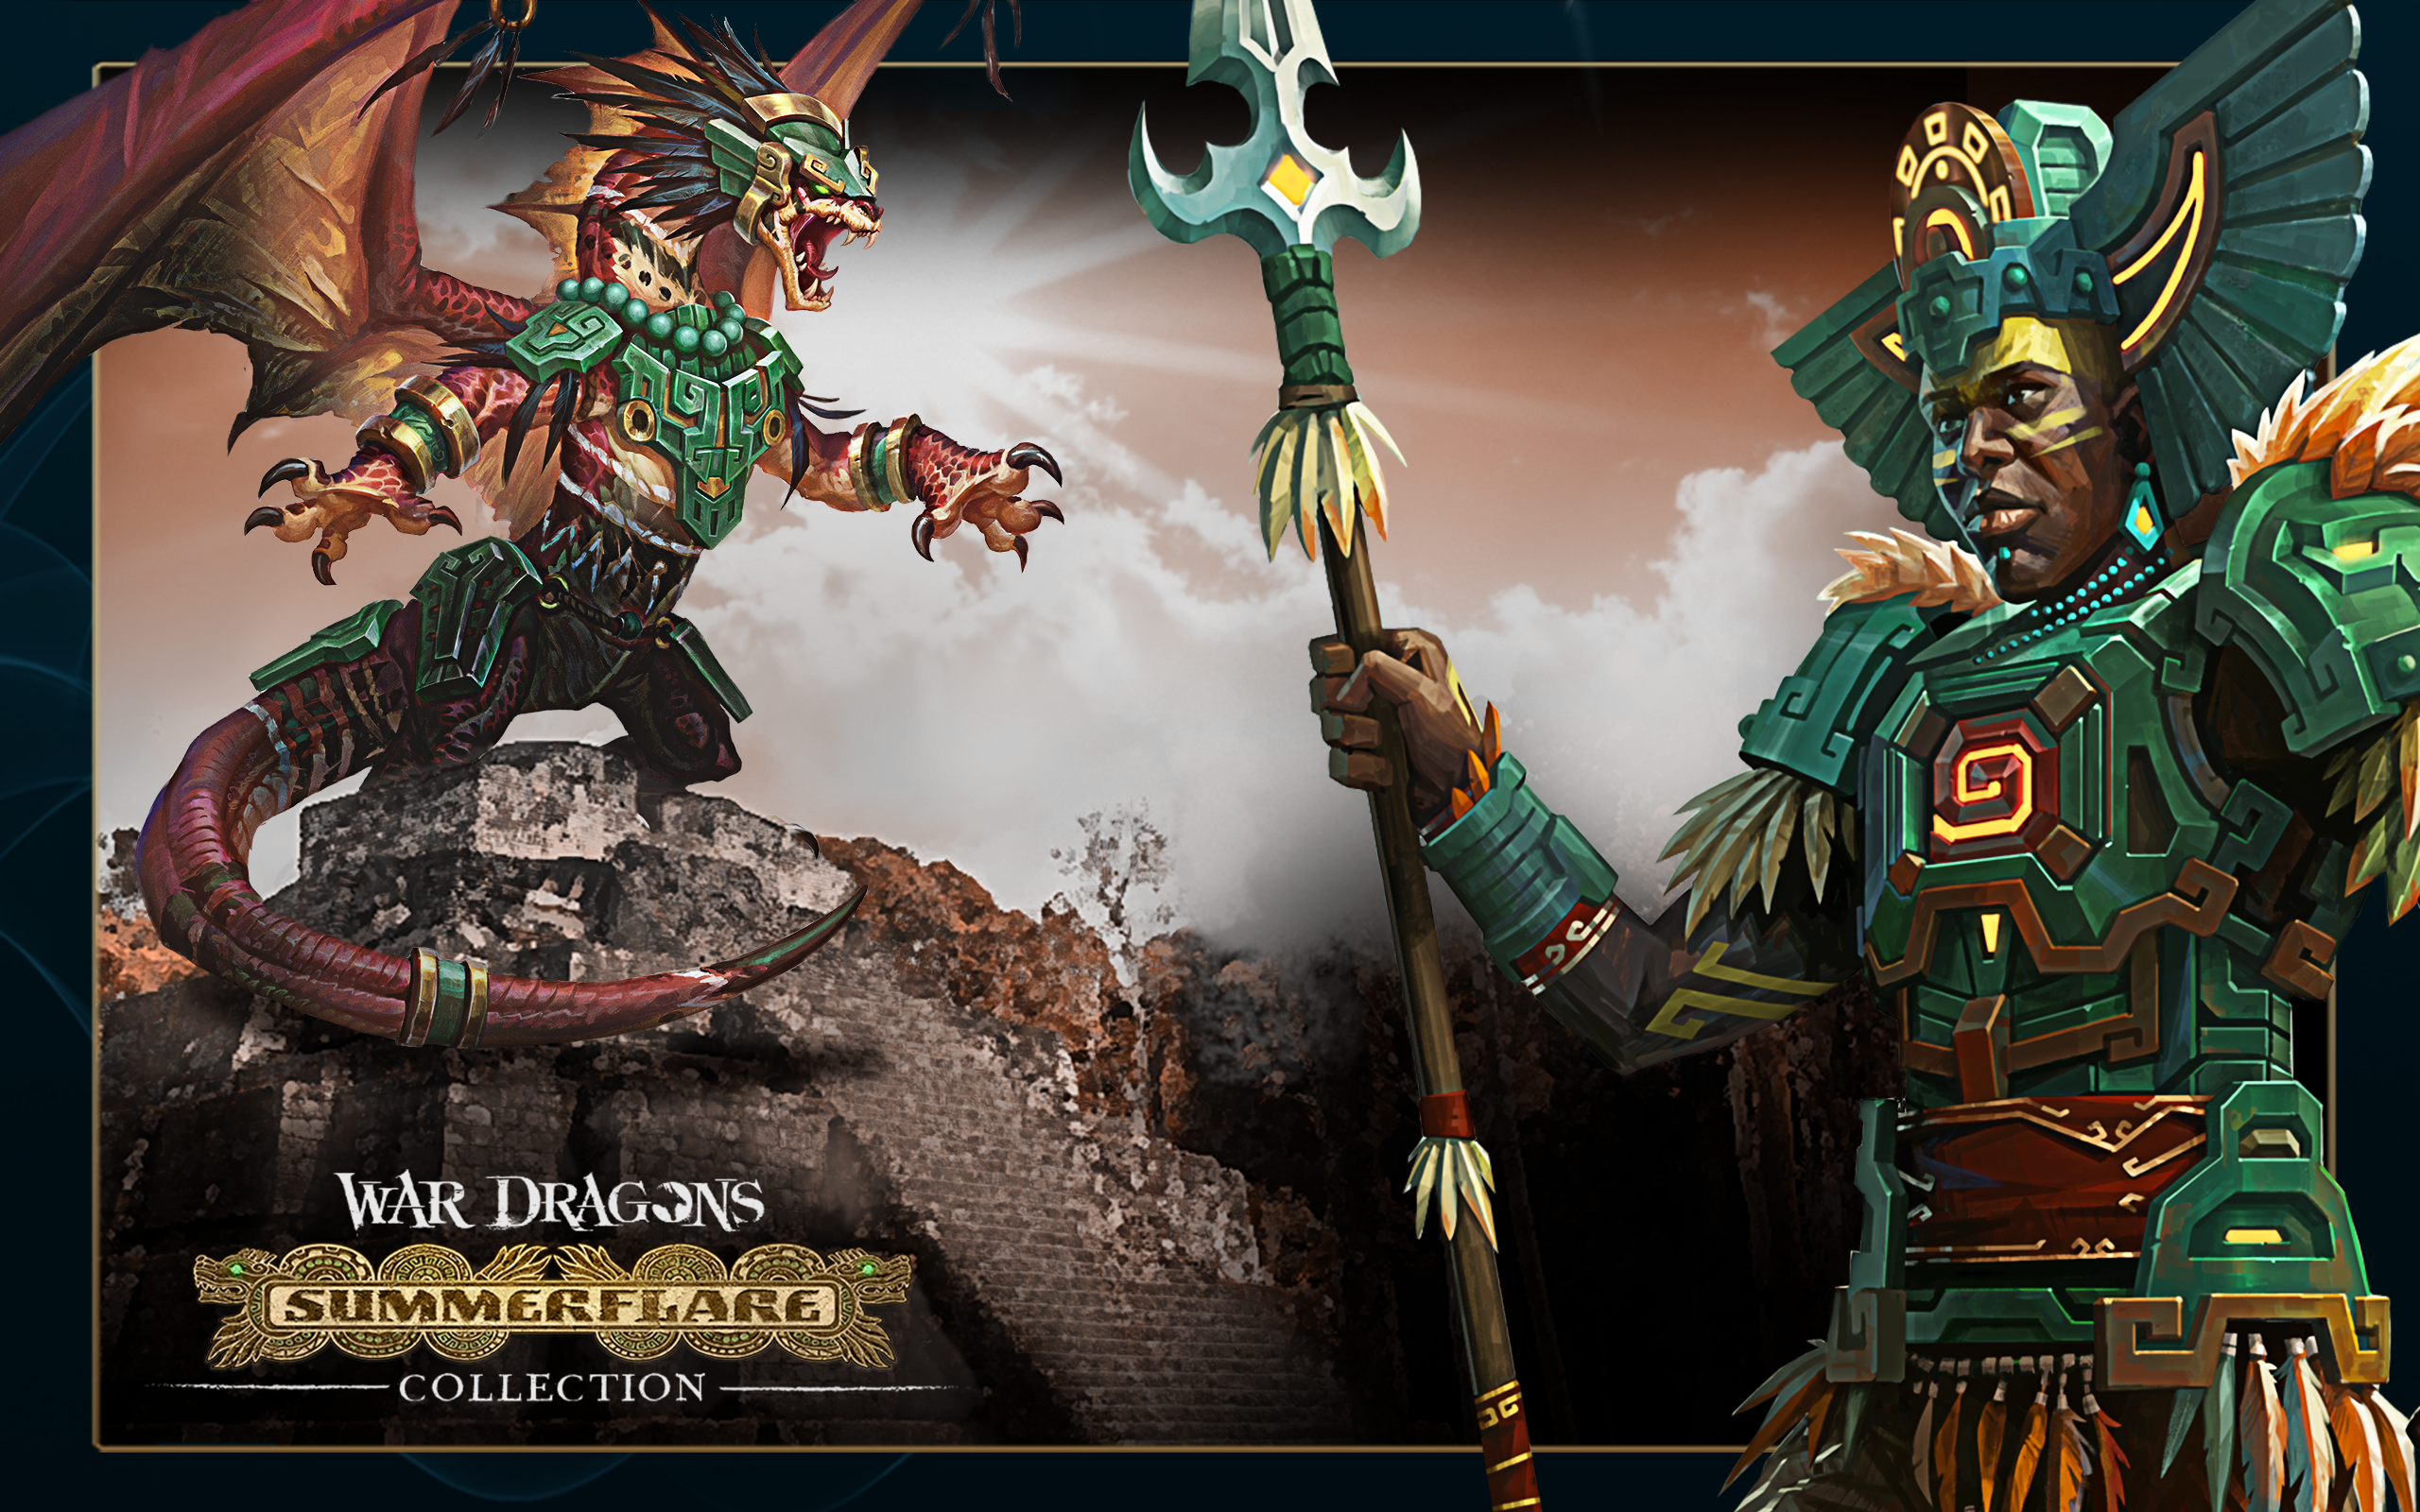 war dragons desktop and mobile backgrounds off topic war dragons